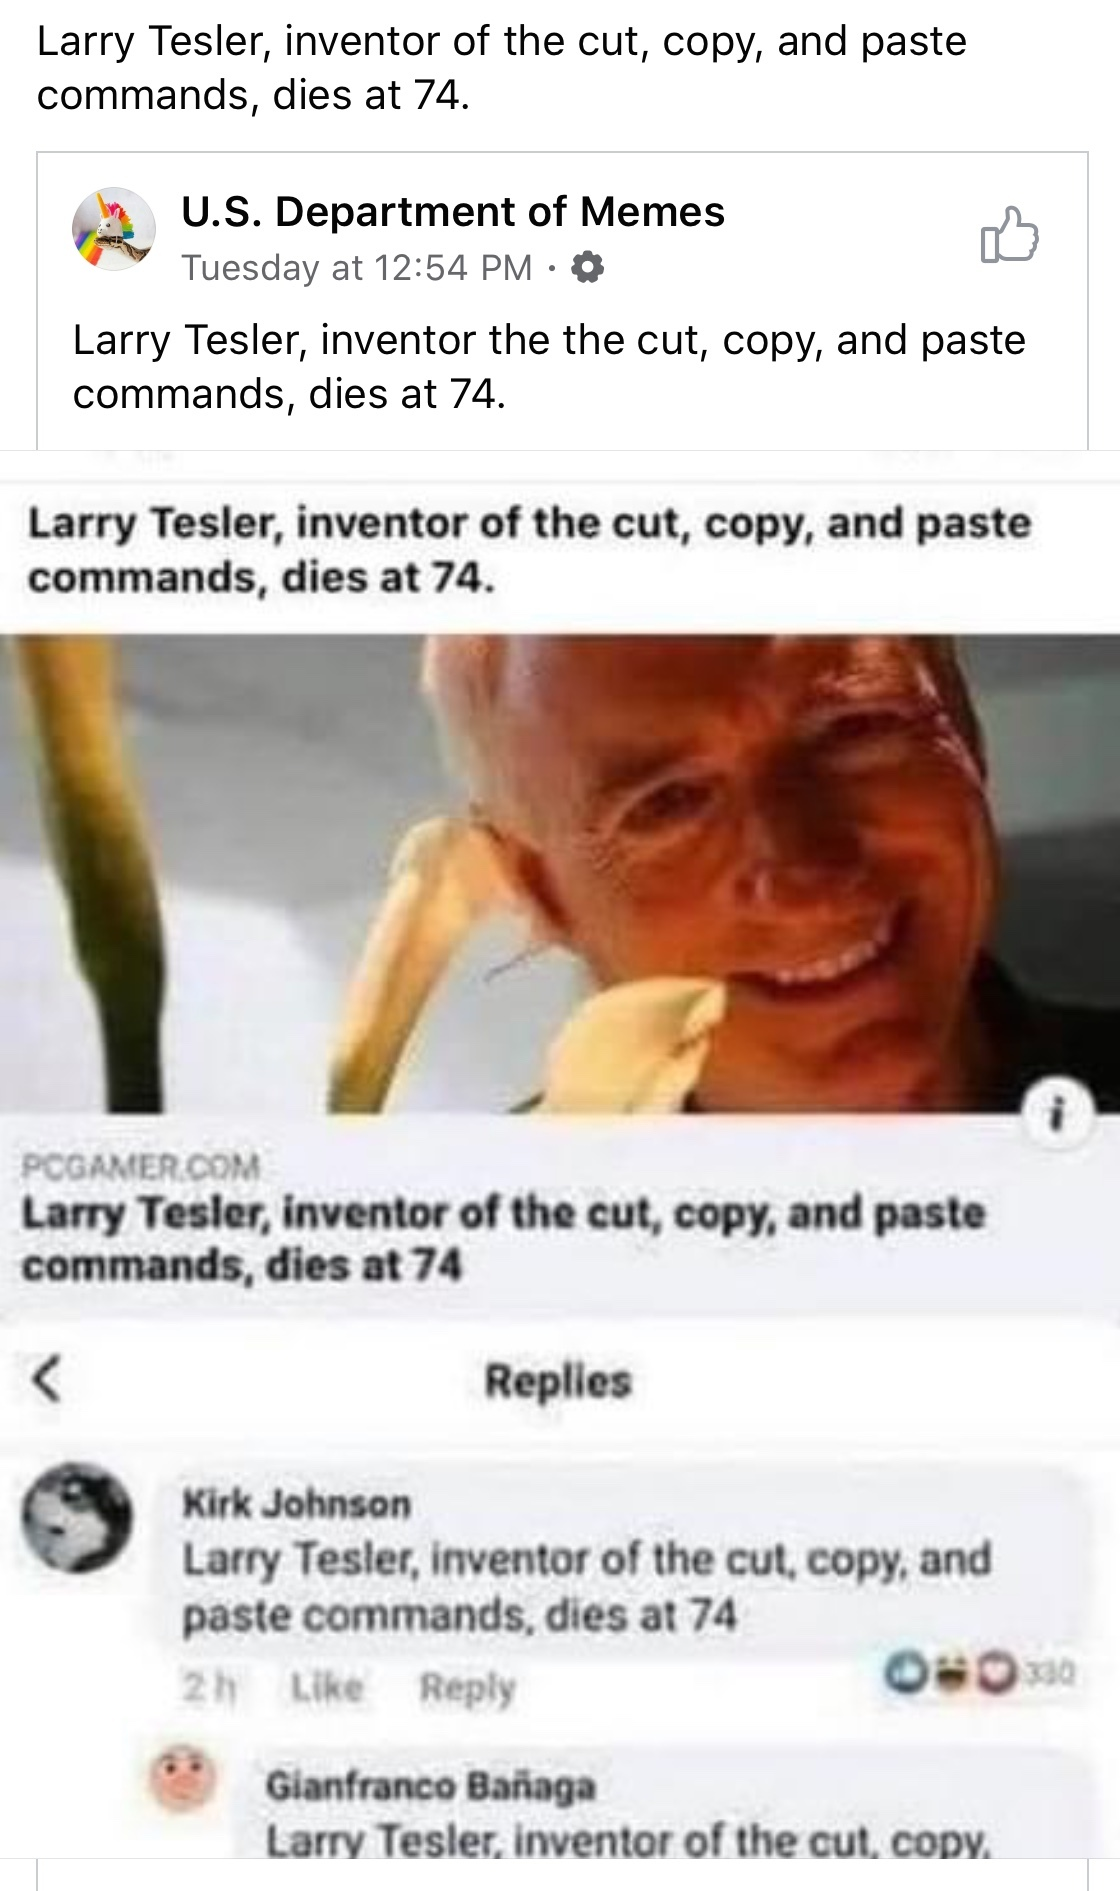 Larry Tesler, inventor of the cut, copy, and paste commands, dies at 74 - meme